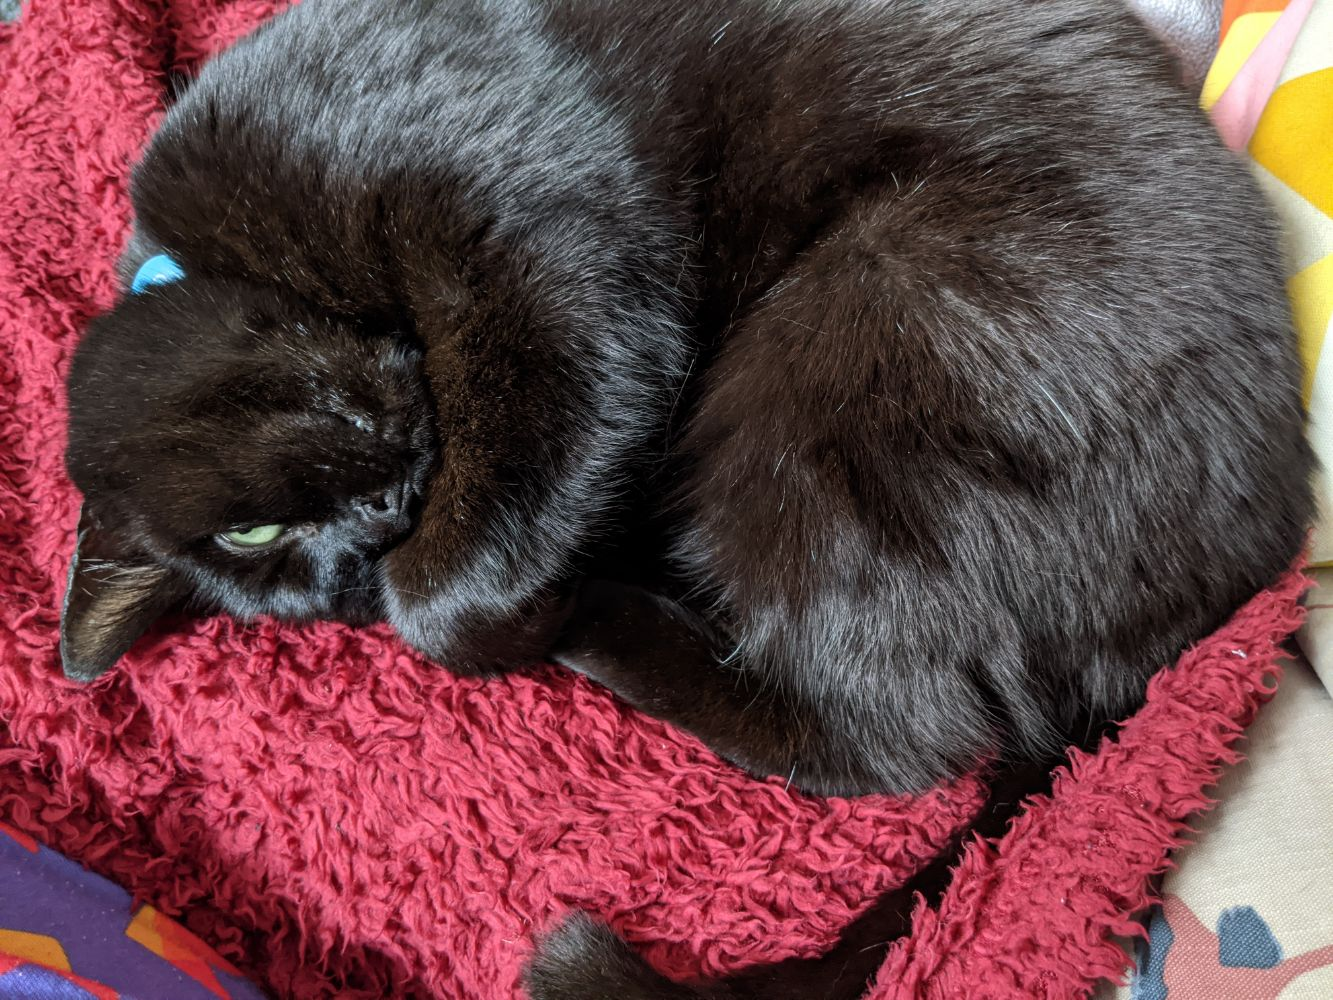 Black cat lying on a red blanket on his side, all curled up, with one eye visible